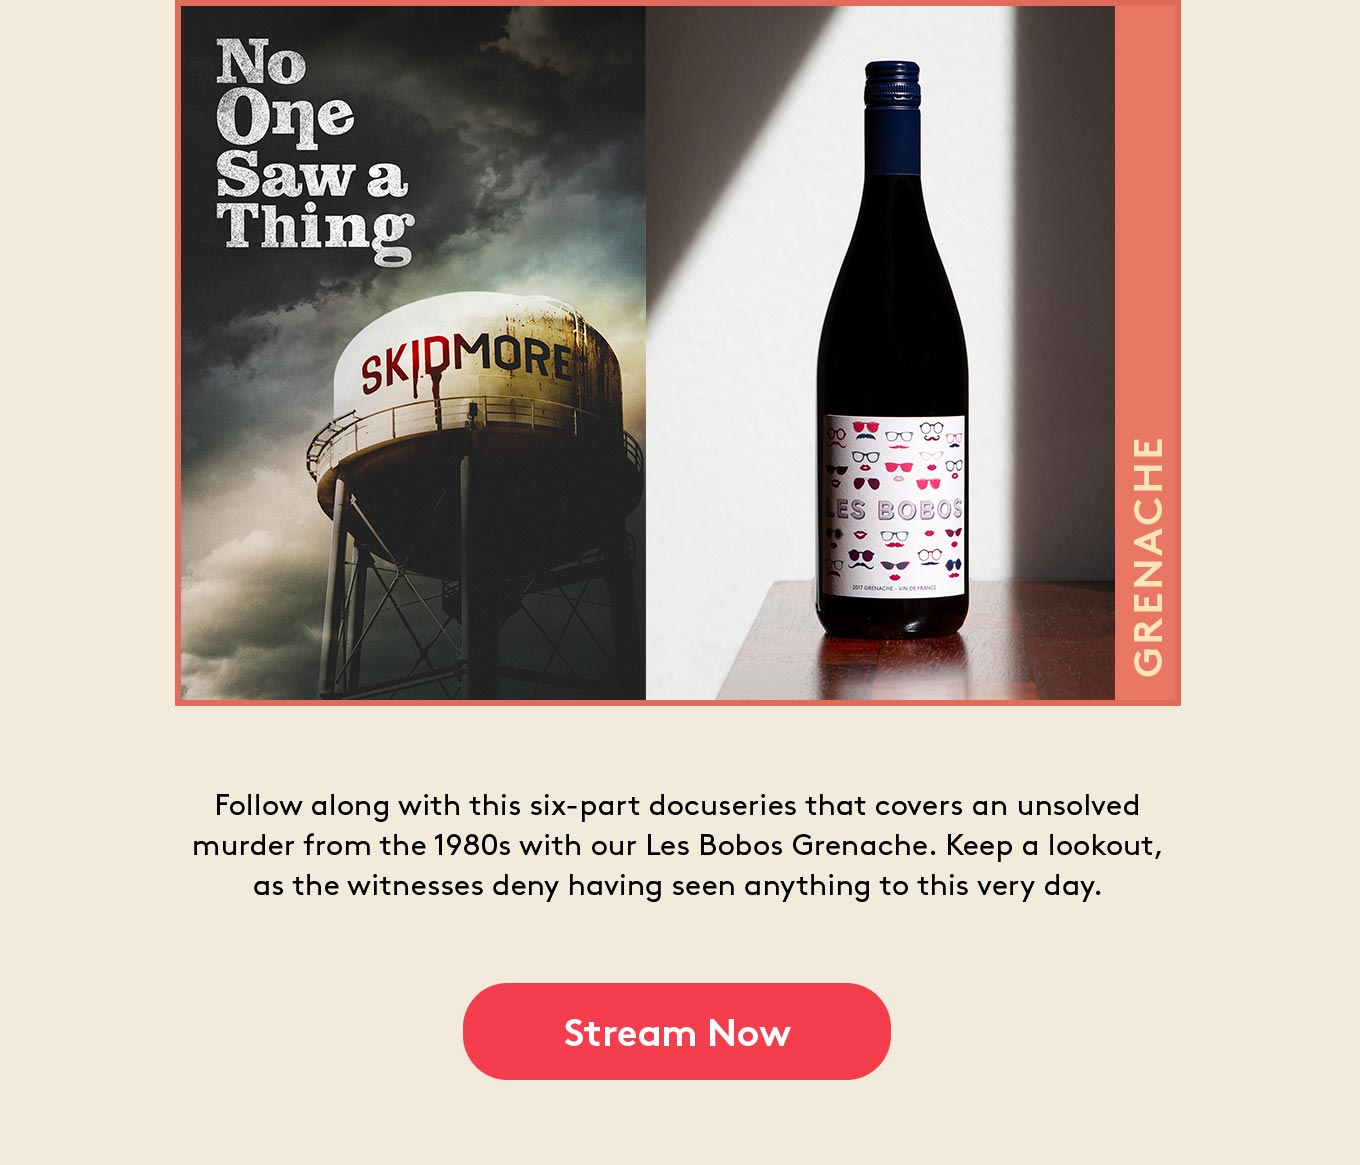 Follow along with this six-part docuseries that covers an unsolved murder from the 1980s with our Les Bobos Grenache. Keep a lookout, as the witnesses deny having seen anything to this very day.